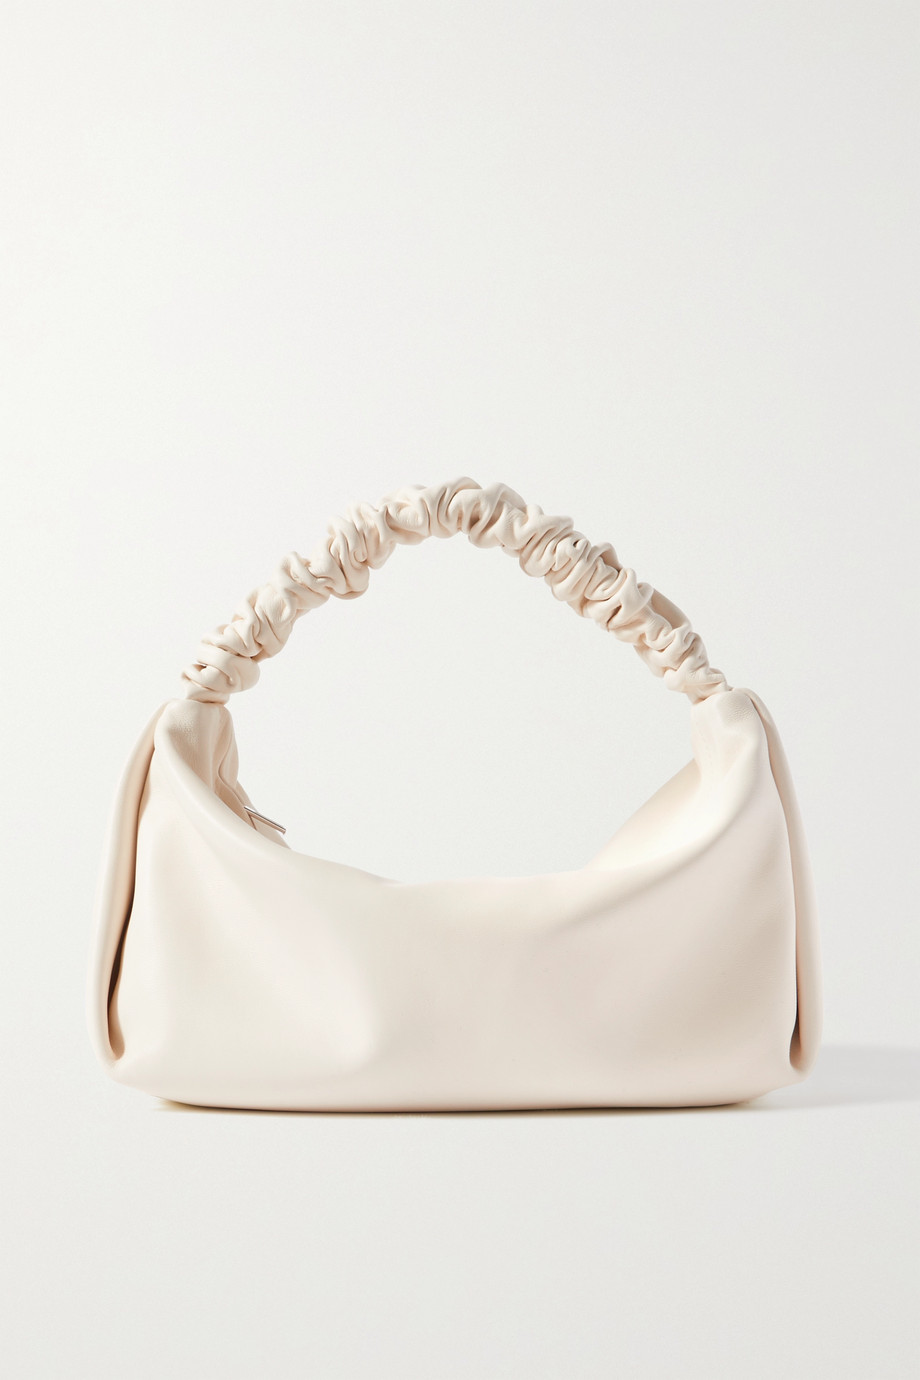 ALEXANDER WANG Small leather tote